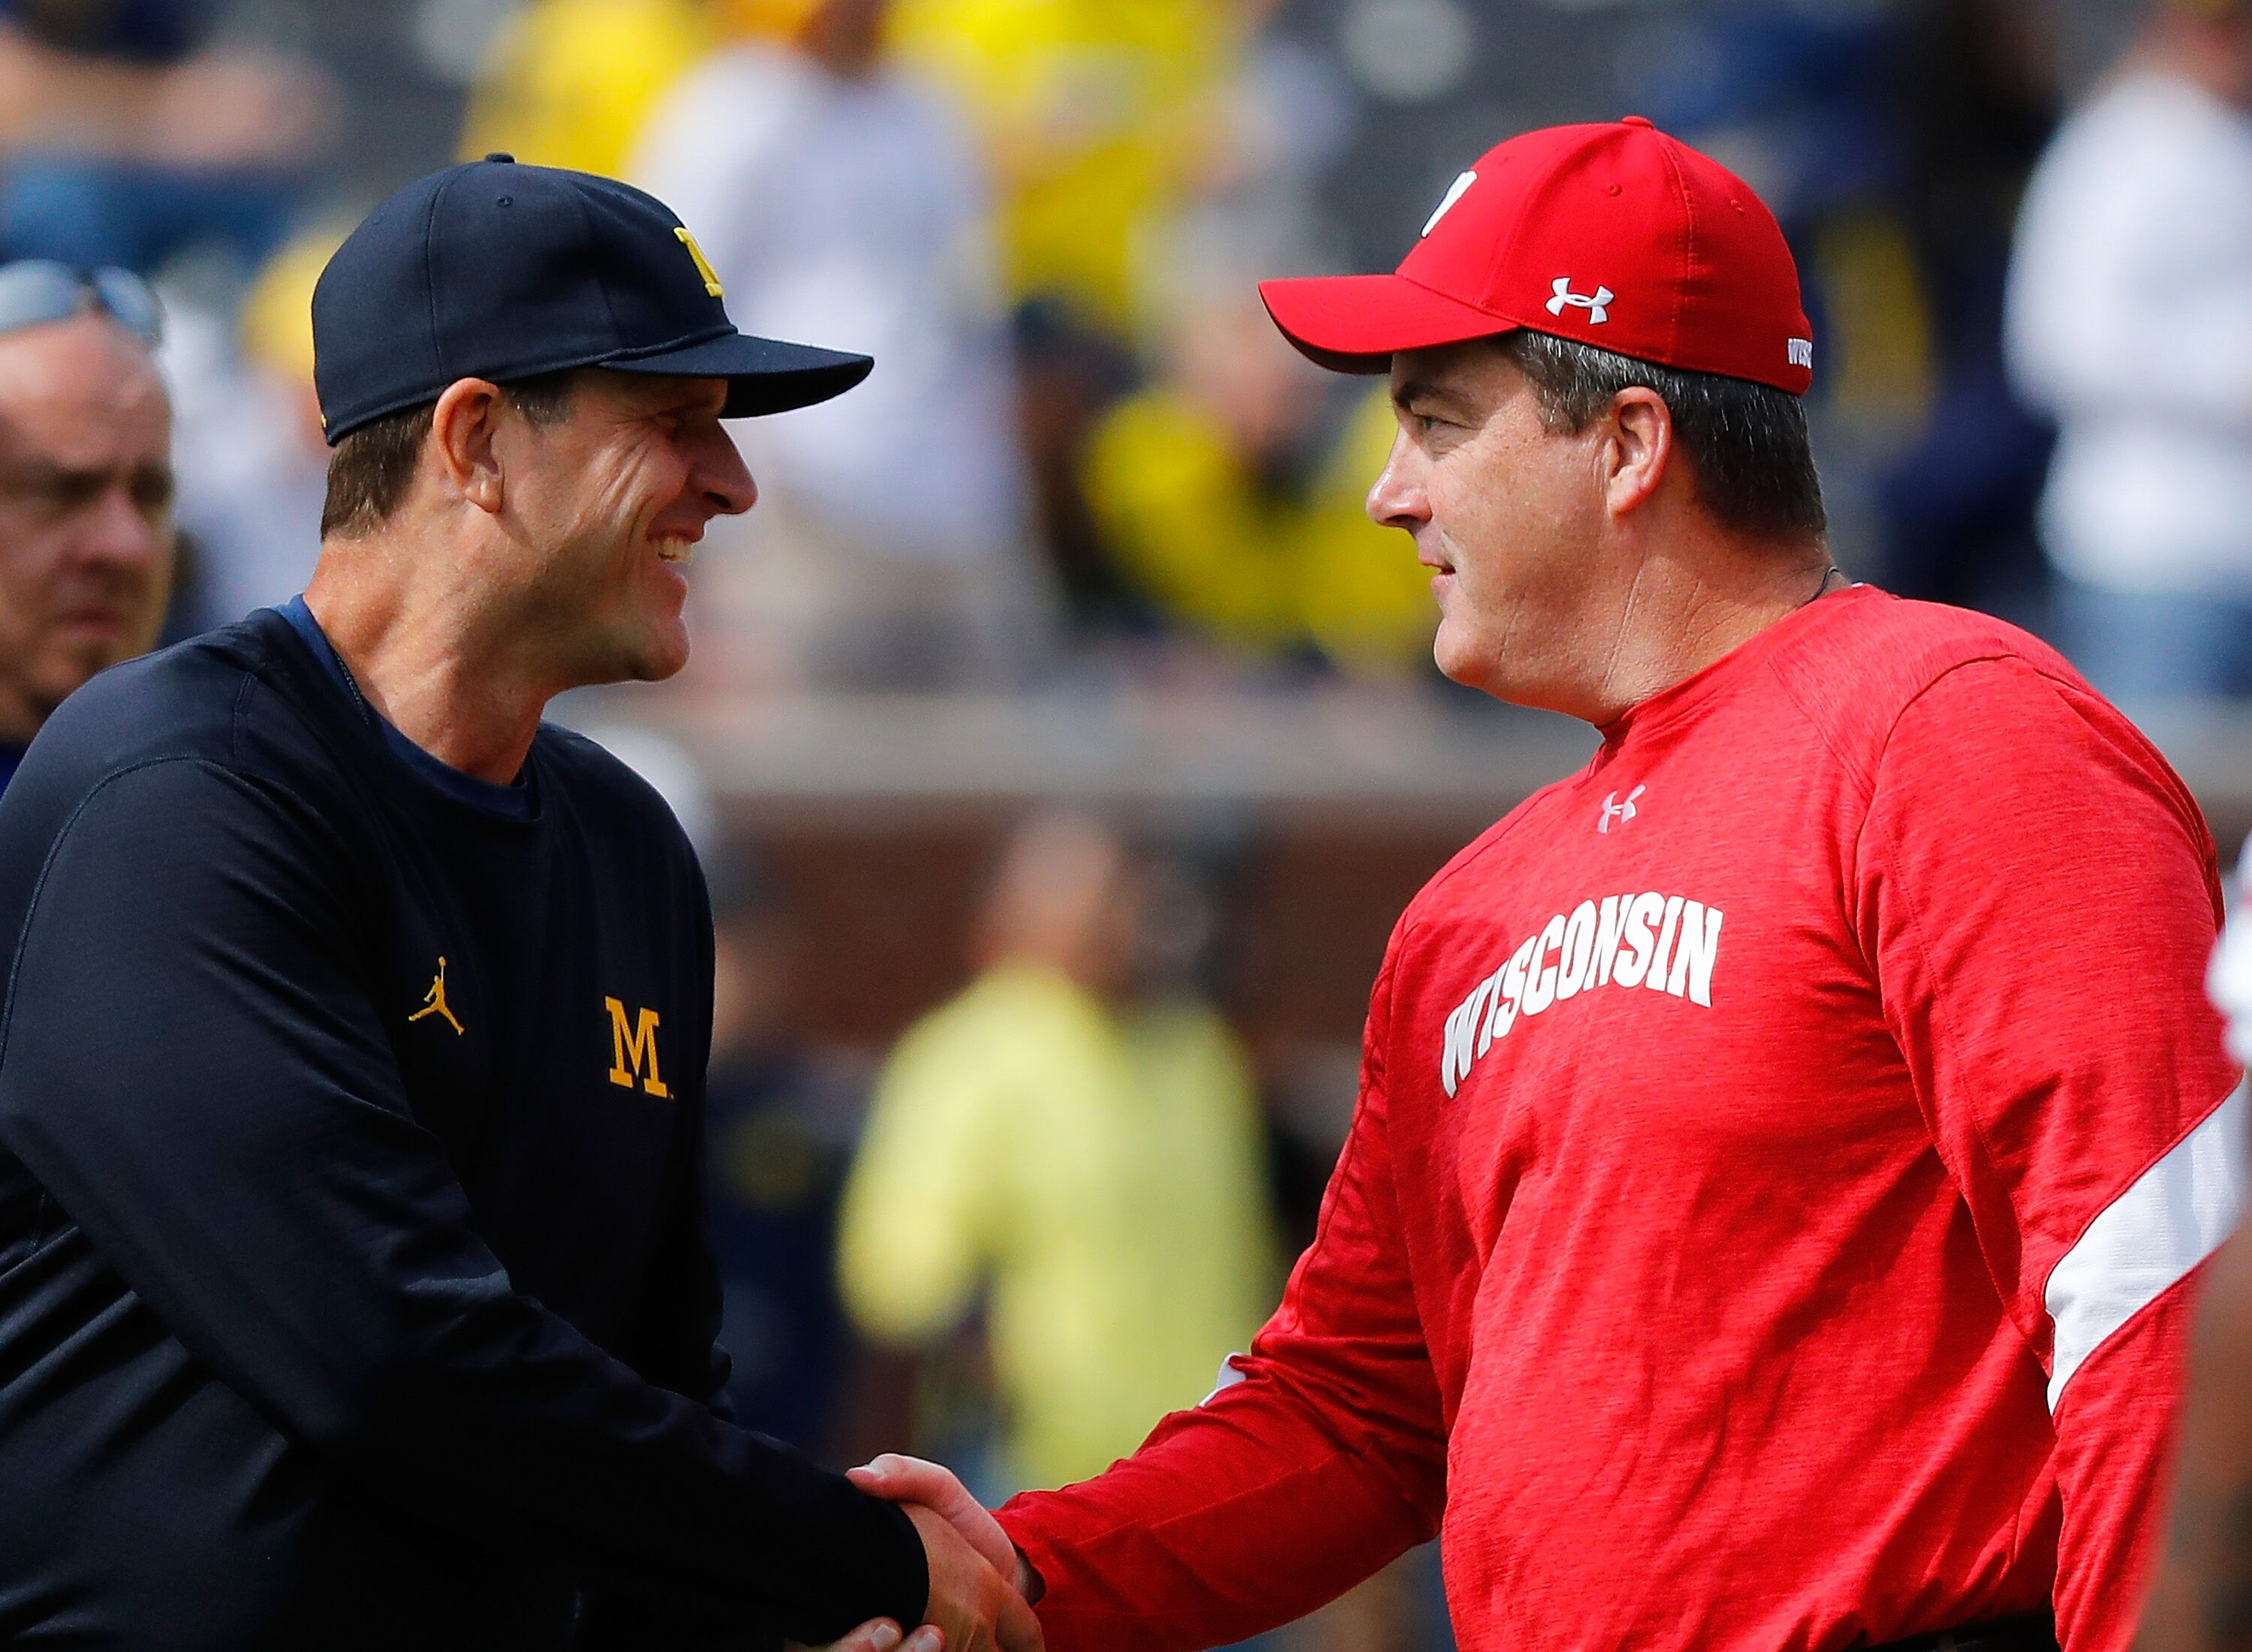 611816784-wisconsin-v-michigan.jpg